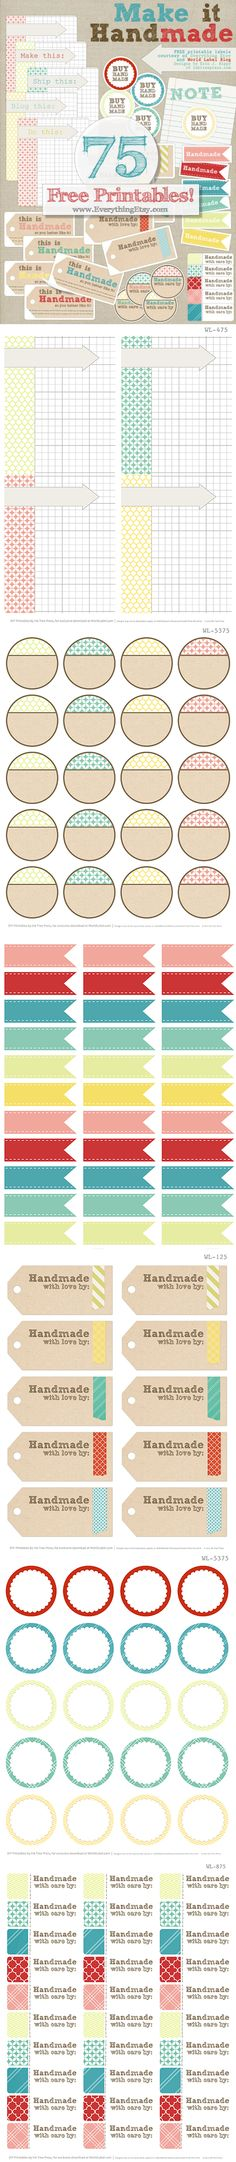 Many free printable labels - with easy to customize text